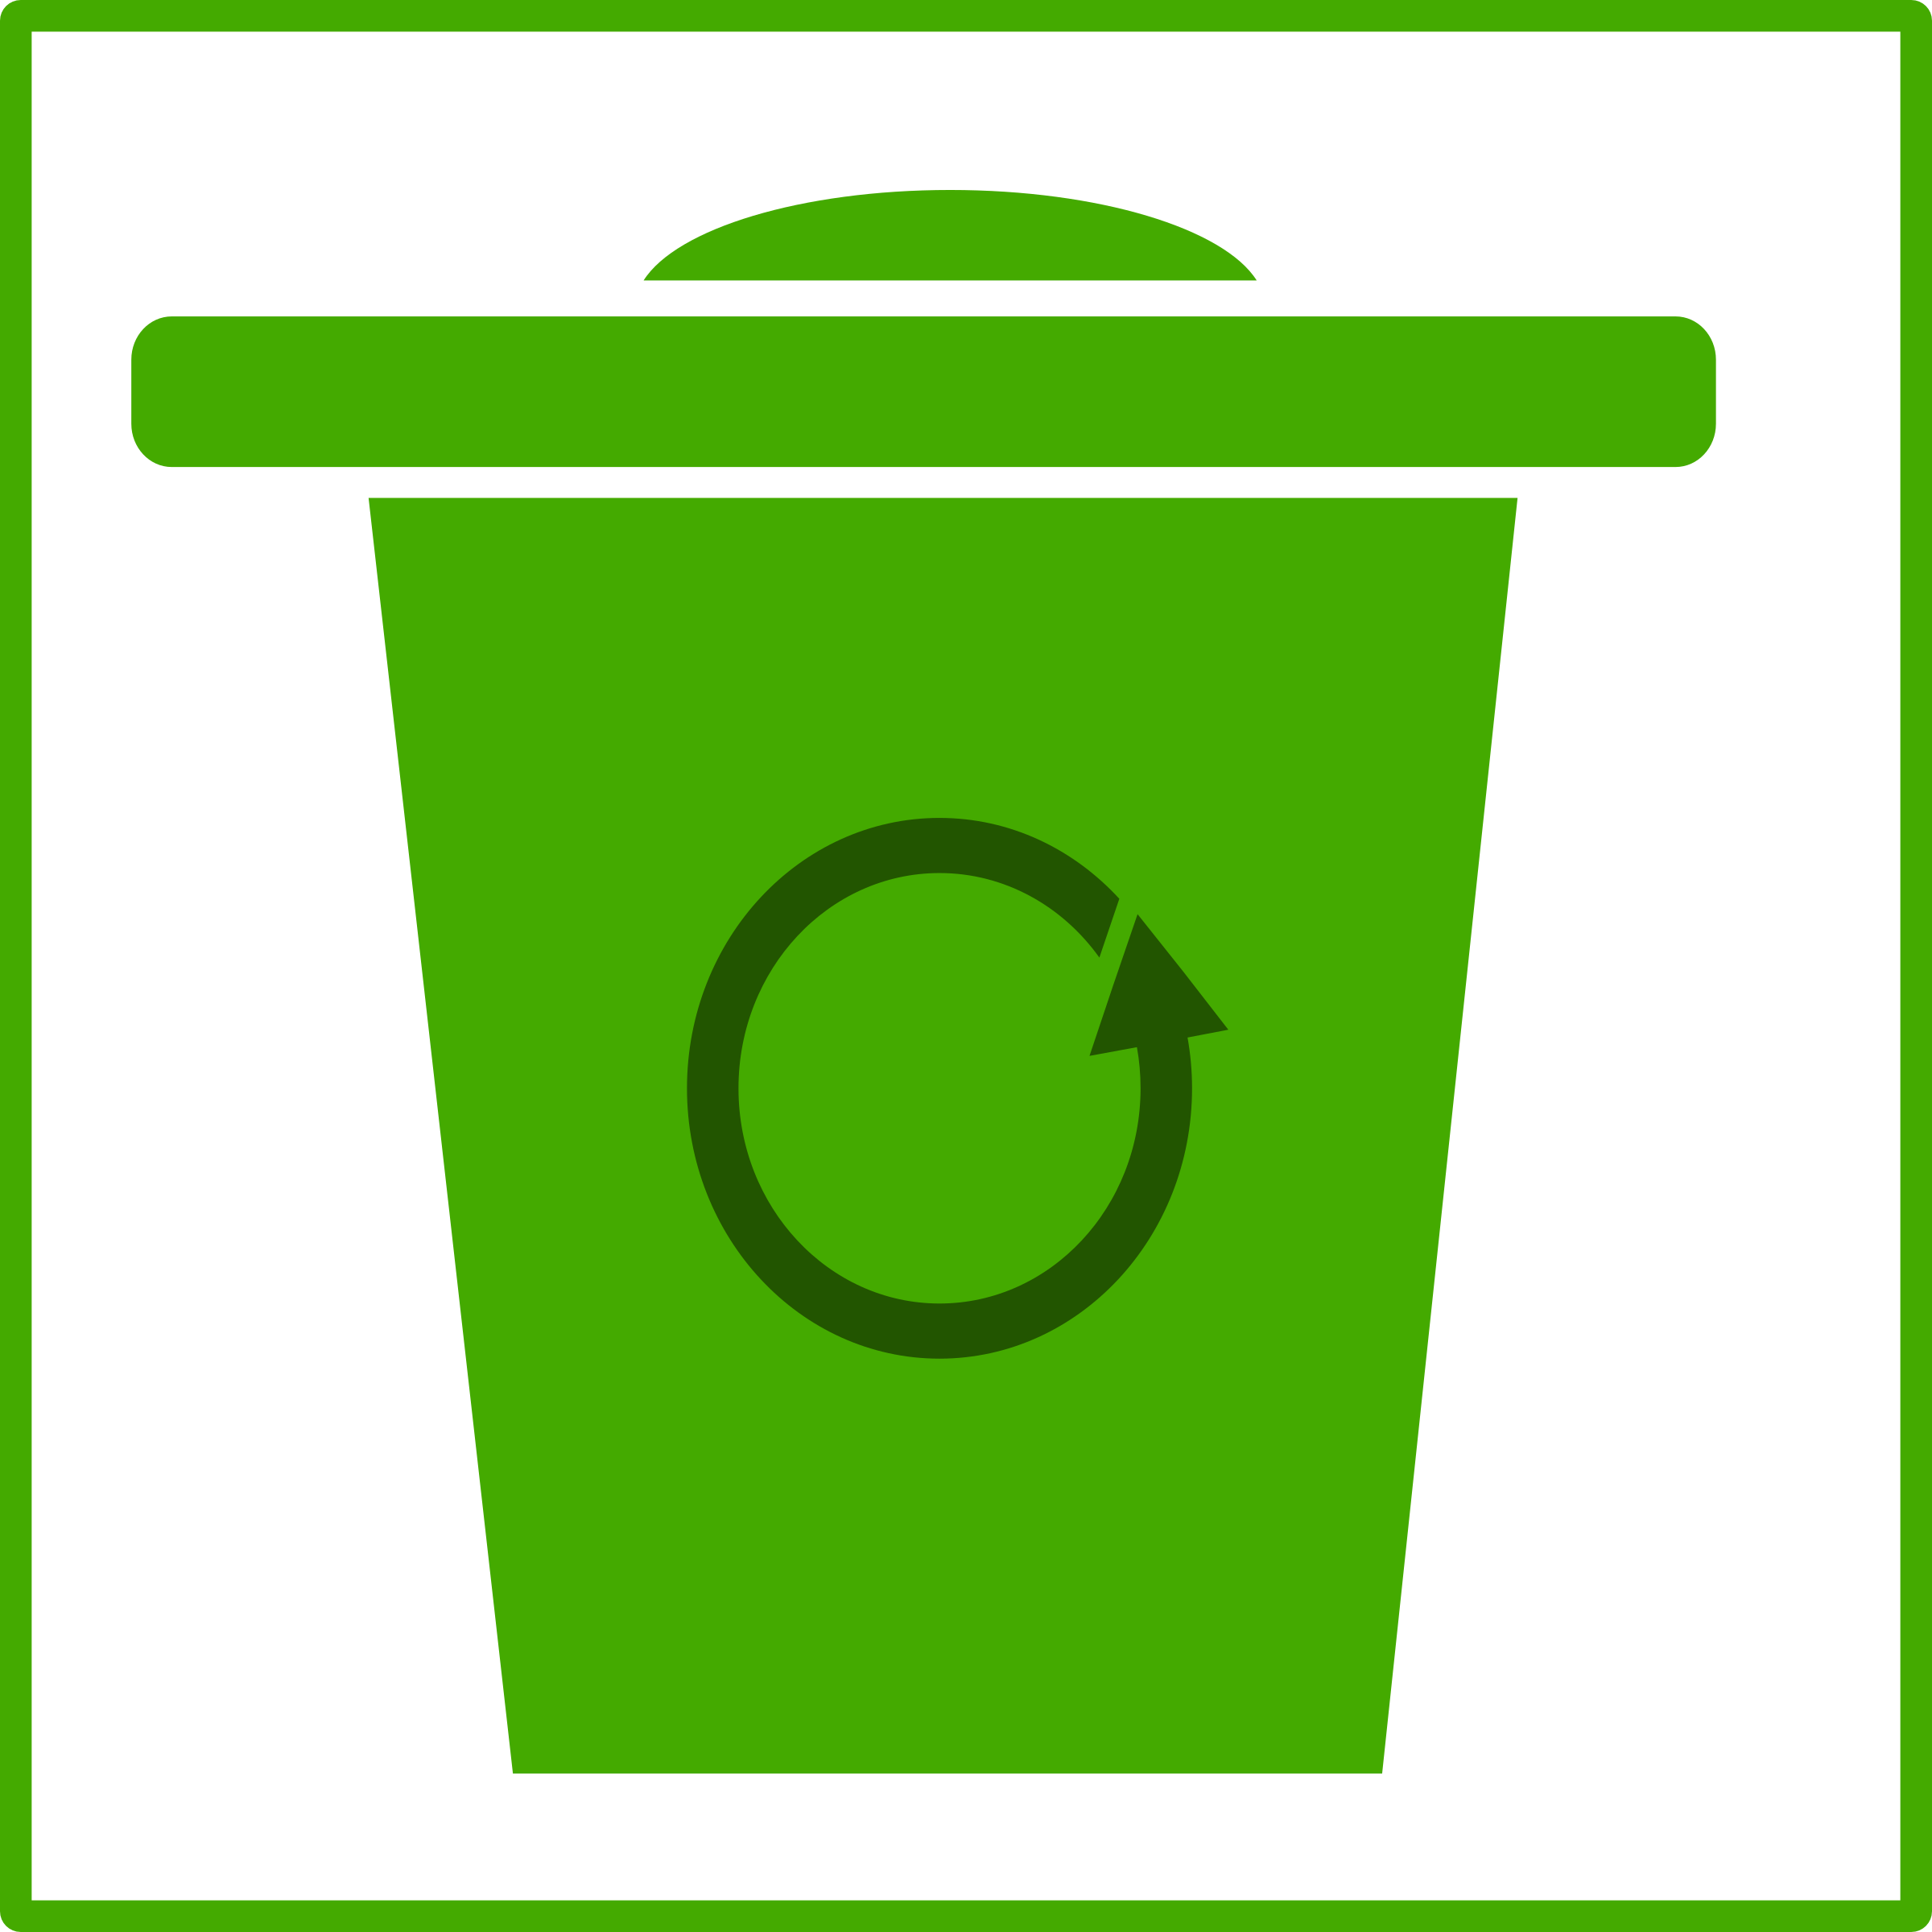 eco green trash icon by dominiquechappard